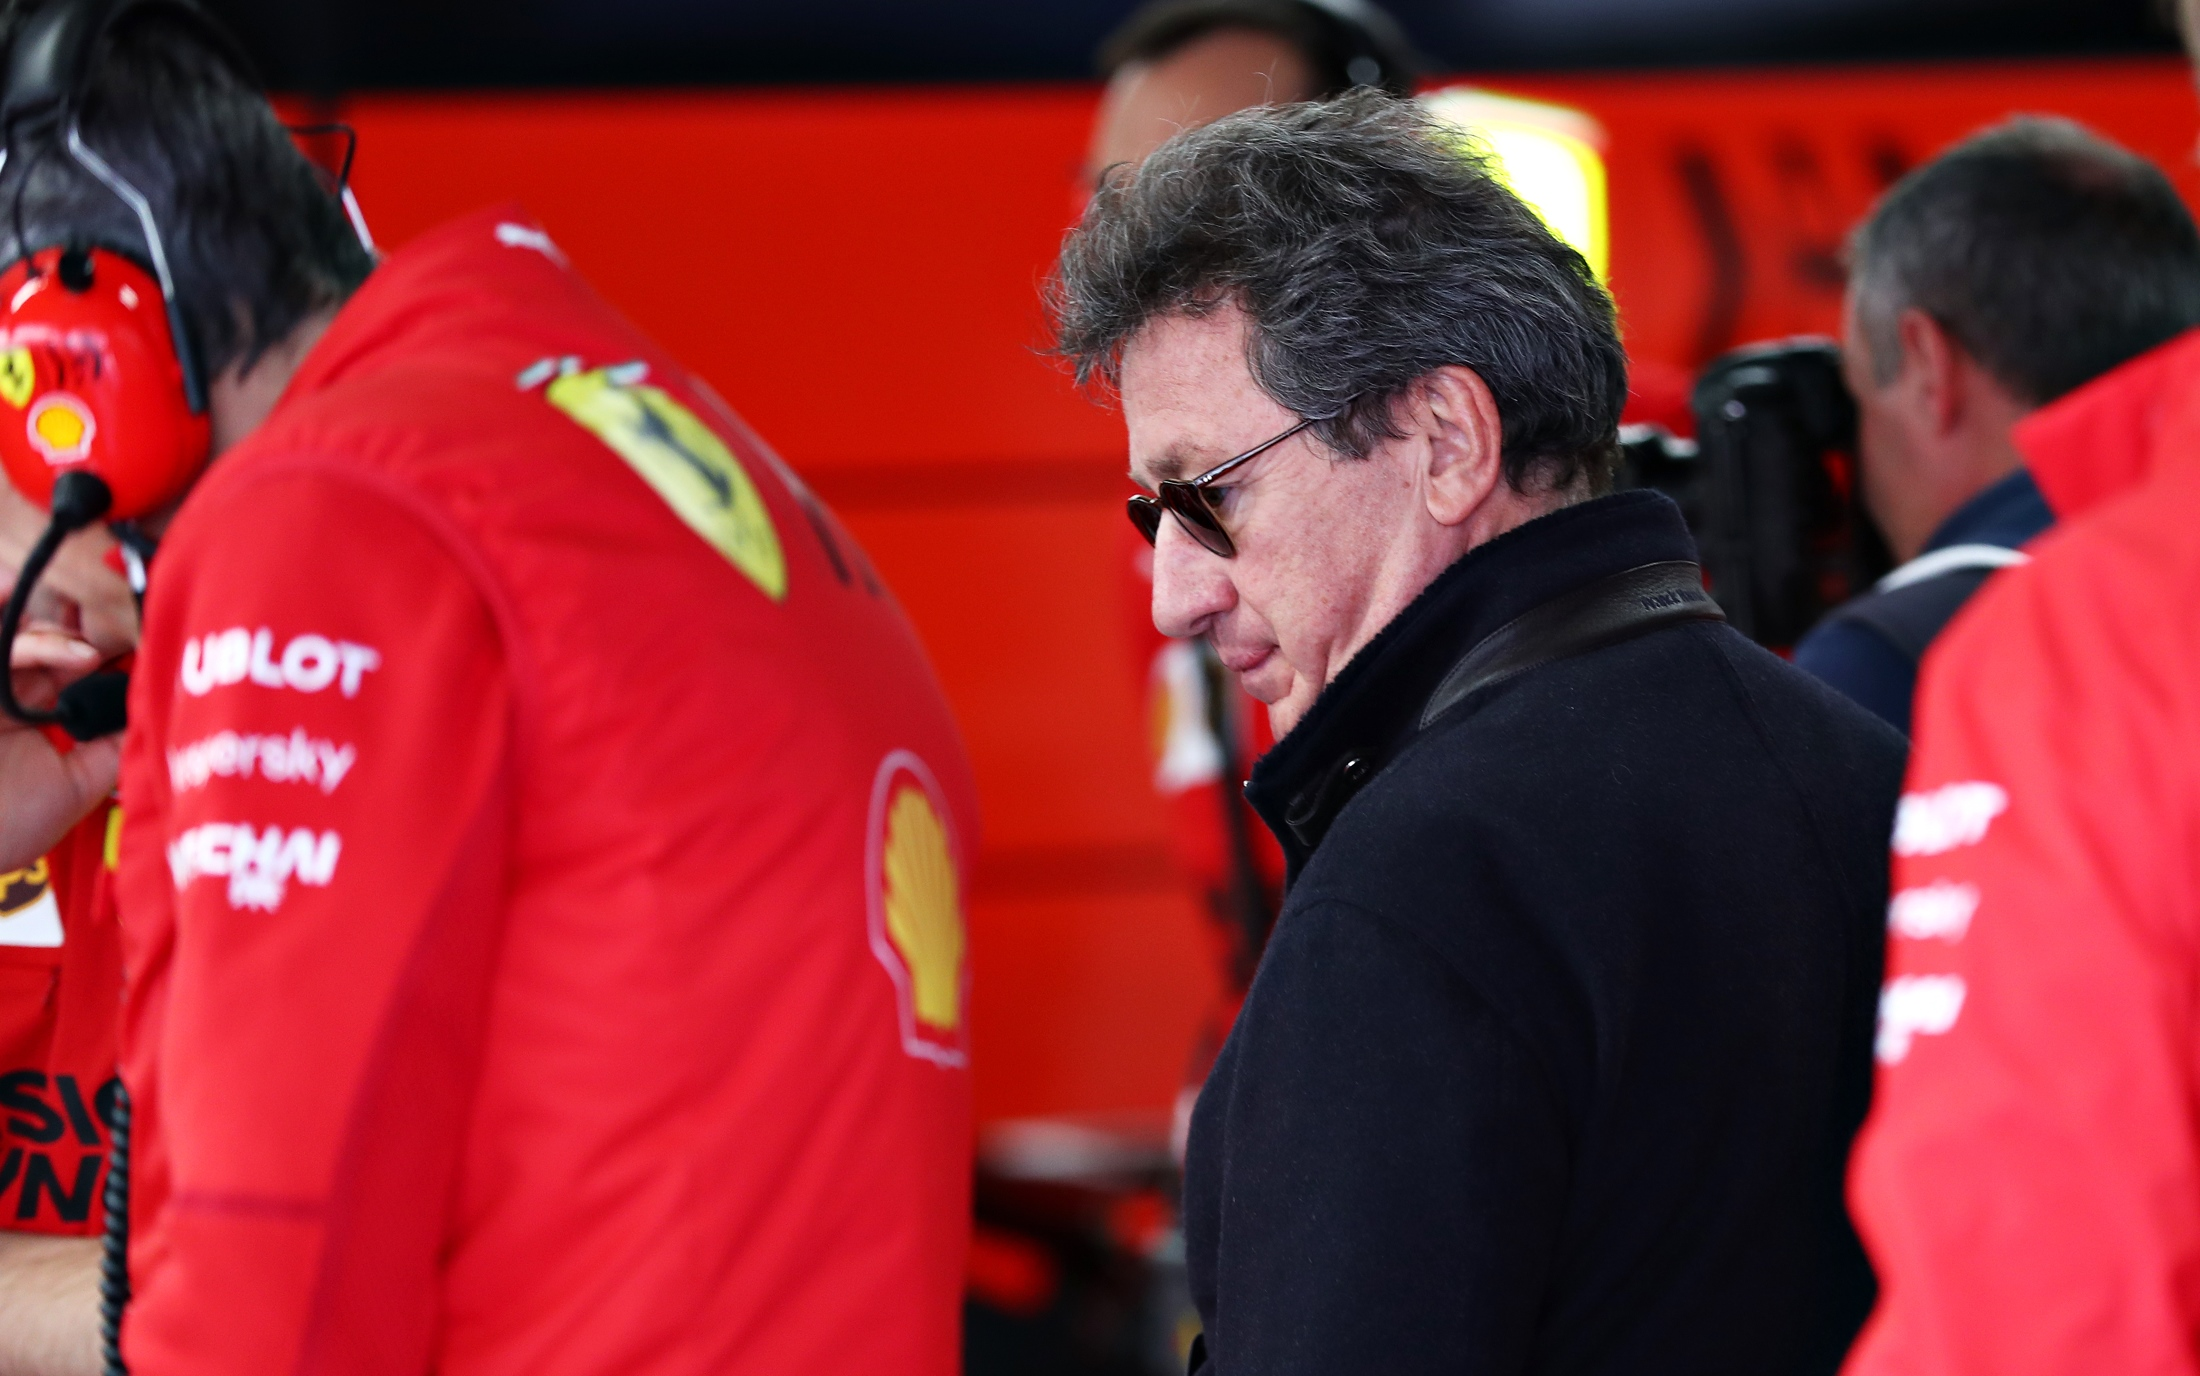 Ferrari Ceo Camilleri Retires With Immediate Effect After Fight With Covid 19 Formula 1